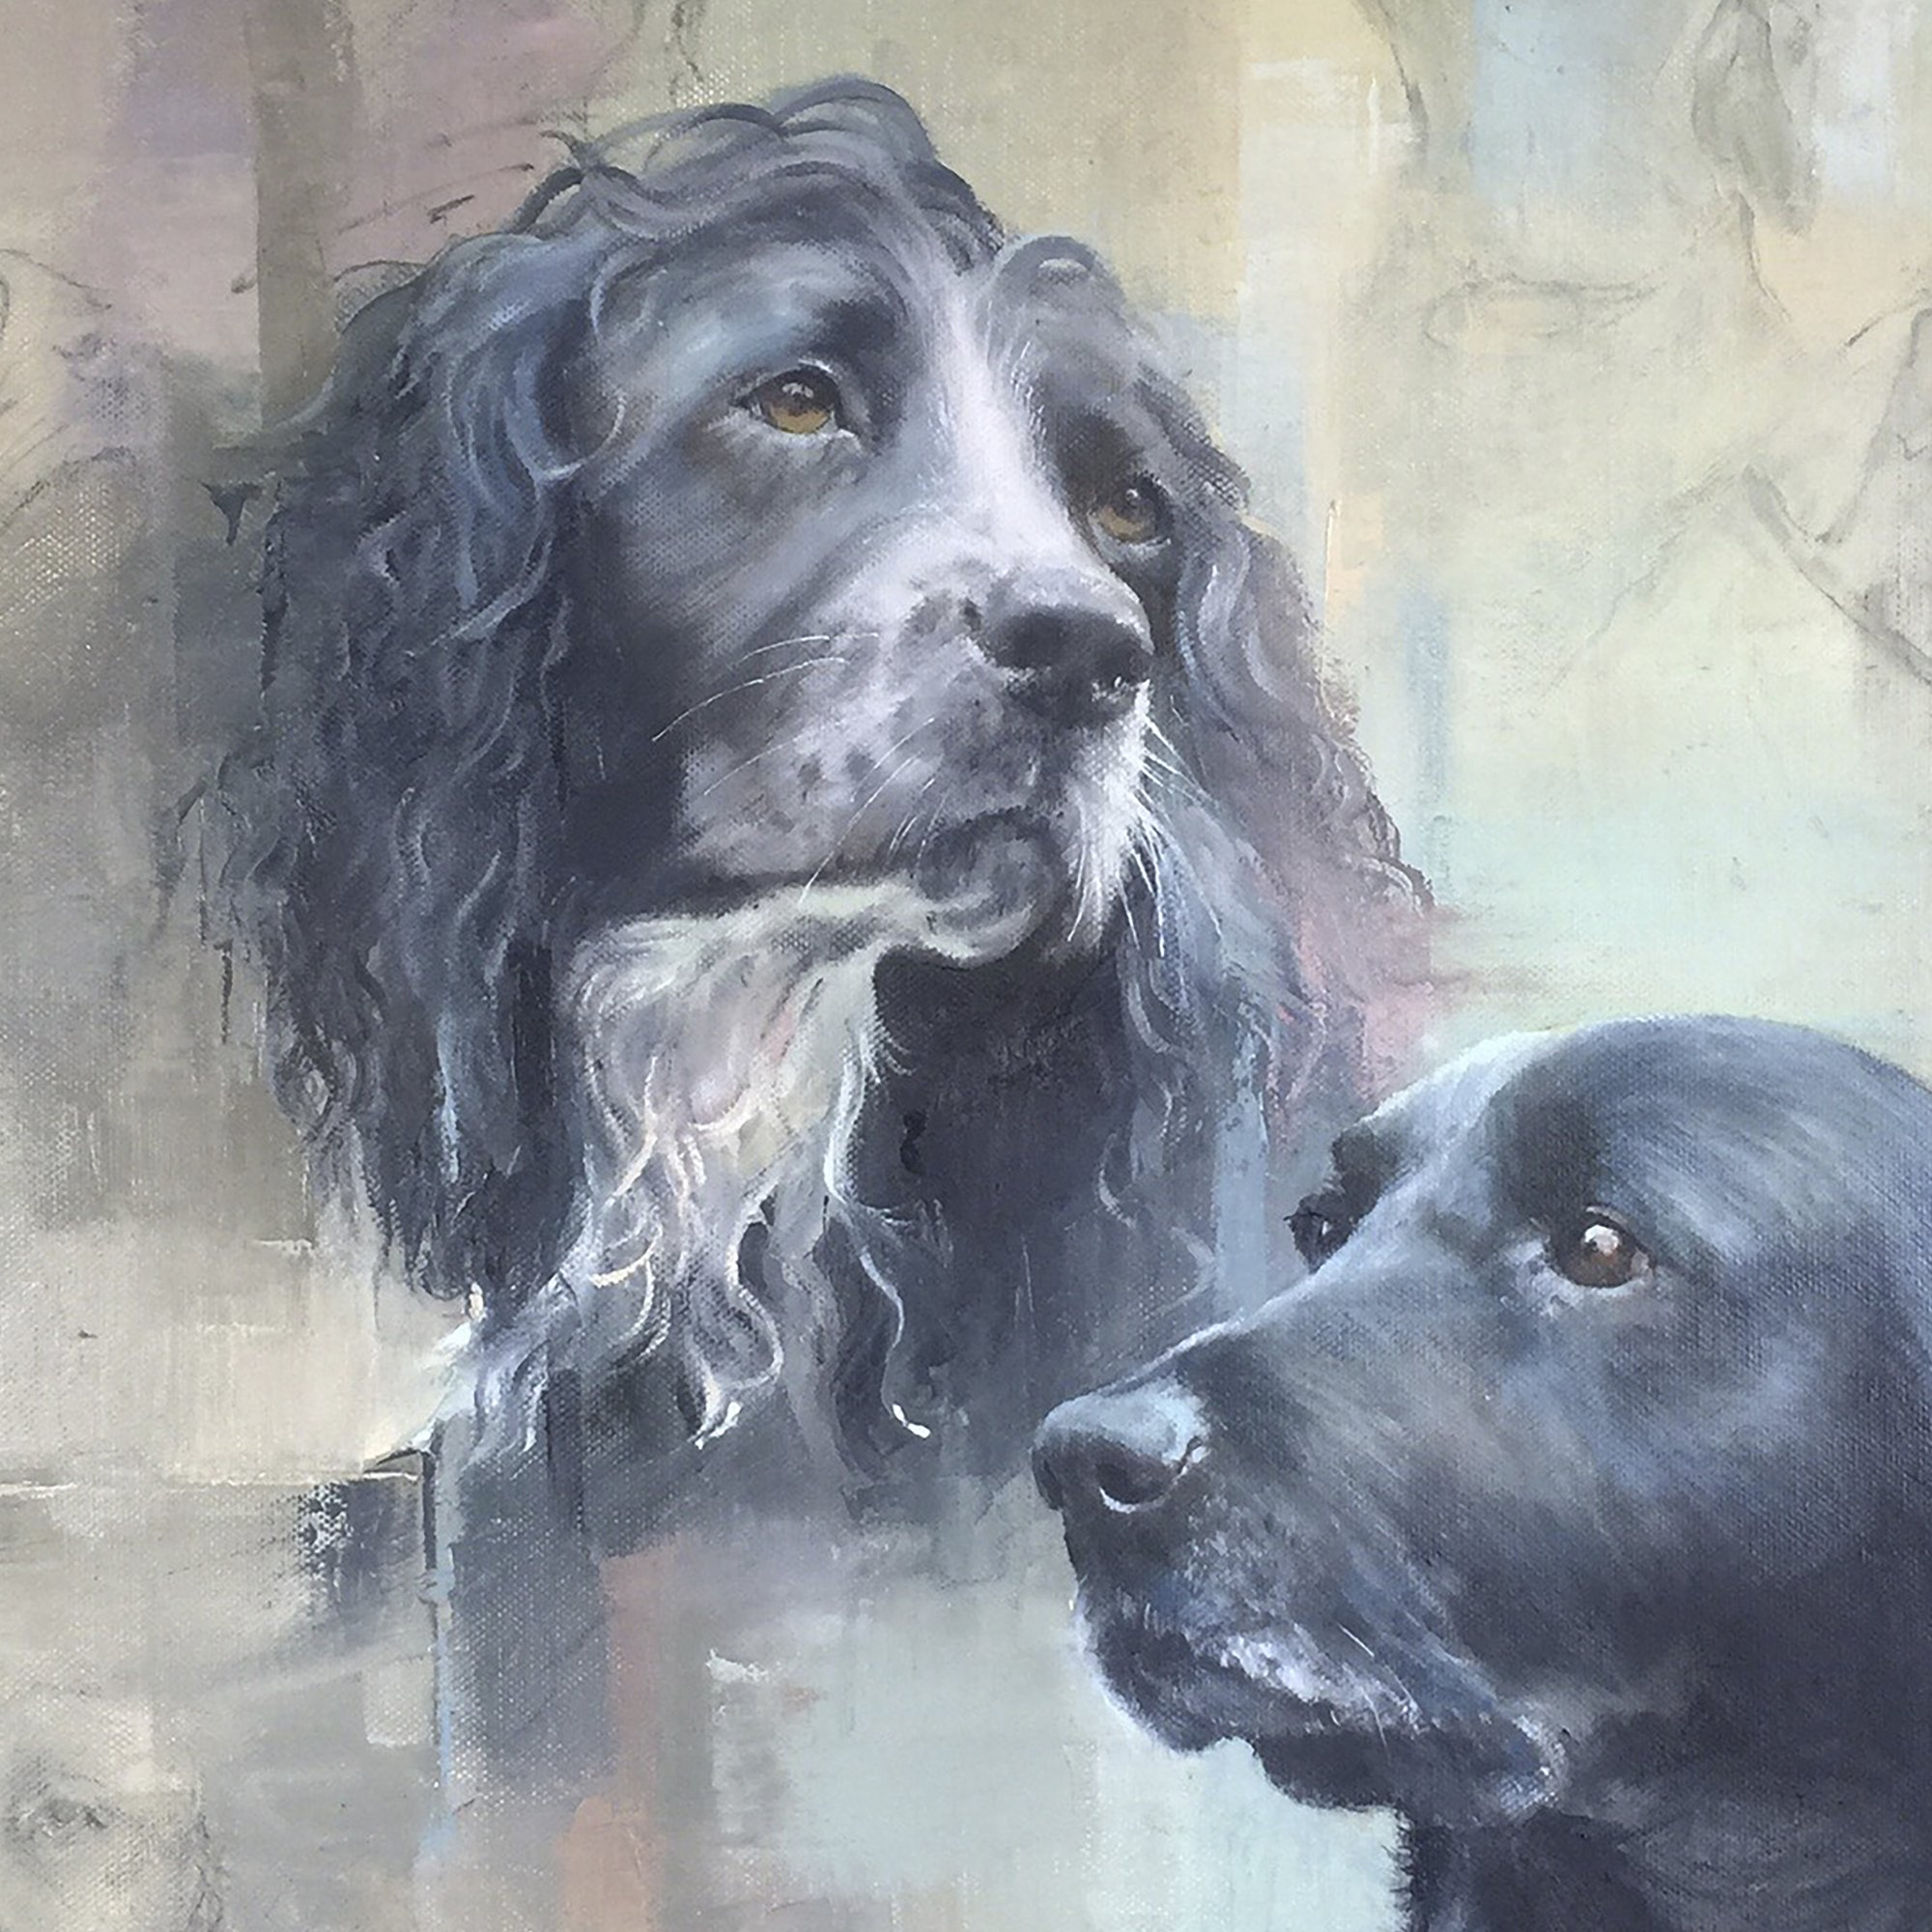 Spaniel and Labrador dog portraits